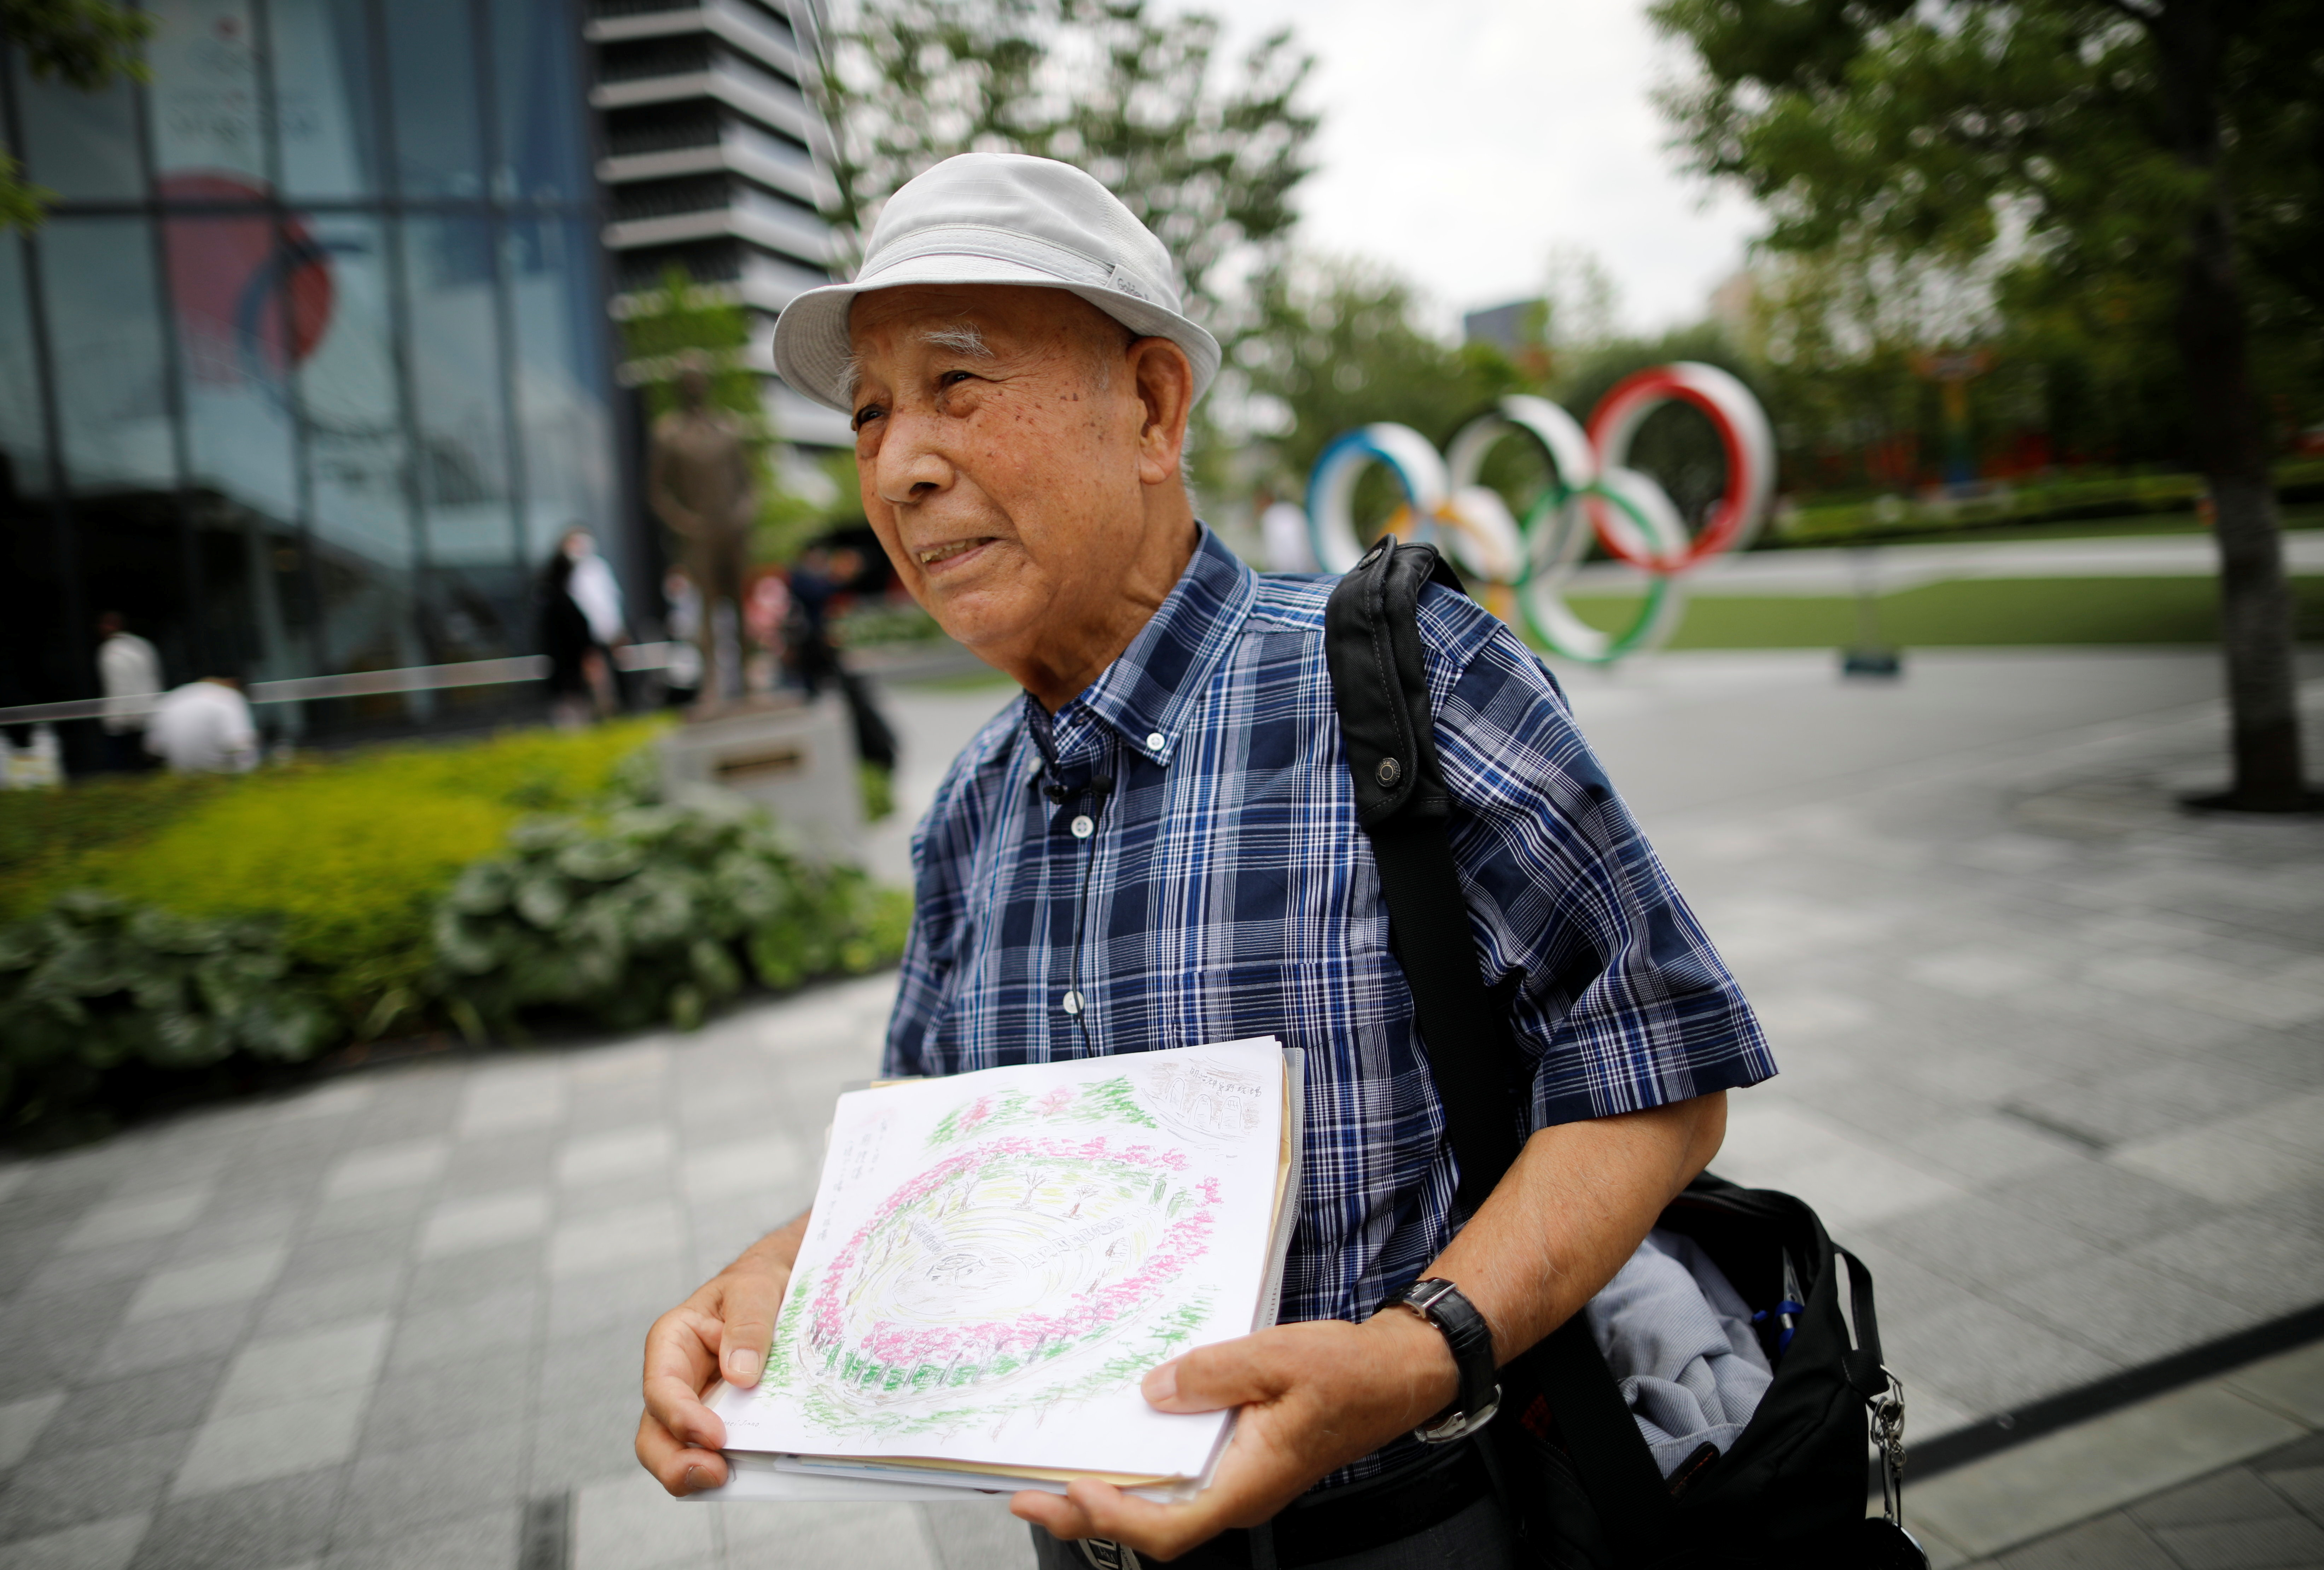 Kohei Jinno, 87, who was forced to leave his house two times ahead of the 1964 and 2020 Olympics Games to make way for construction of the main stadium, speaks in front of the Olympic Rings monument outside the Japan Olympic Museum near the National Stadium, the main stadium for the 2020 Tokyo Olympic Games that have been postponed to 2021 due to the coronavirus disease (COVID-19) pandemic, in Tokyo, Japan June 24, 2021. REUTERS/Issei Kato